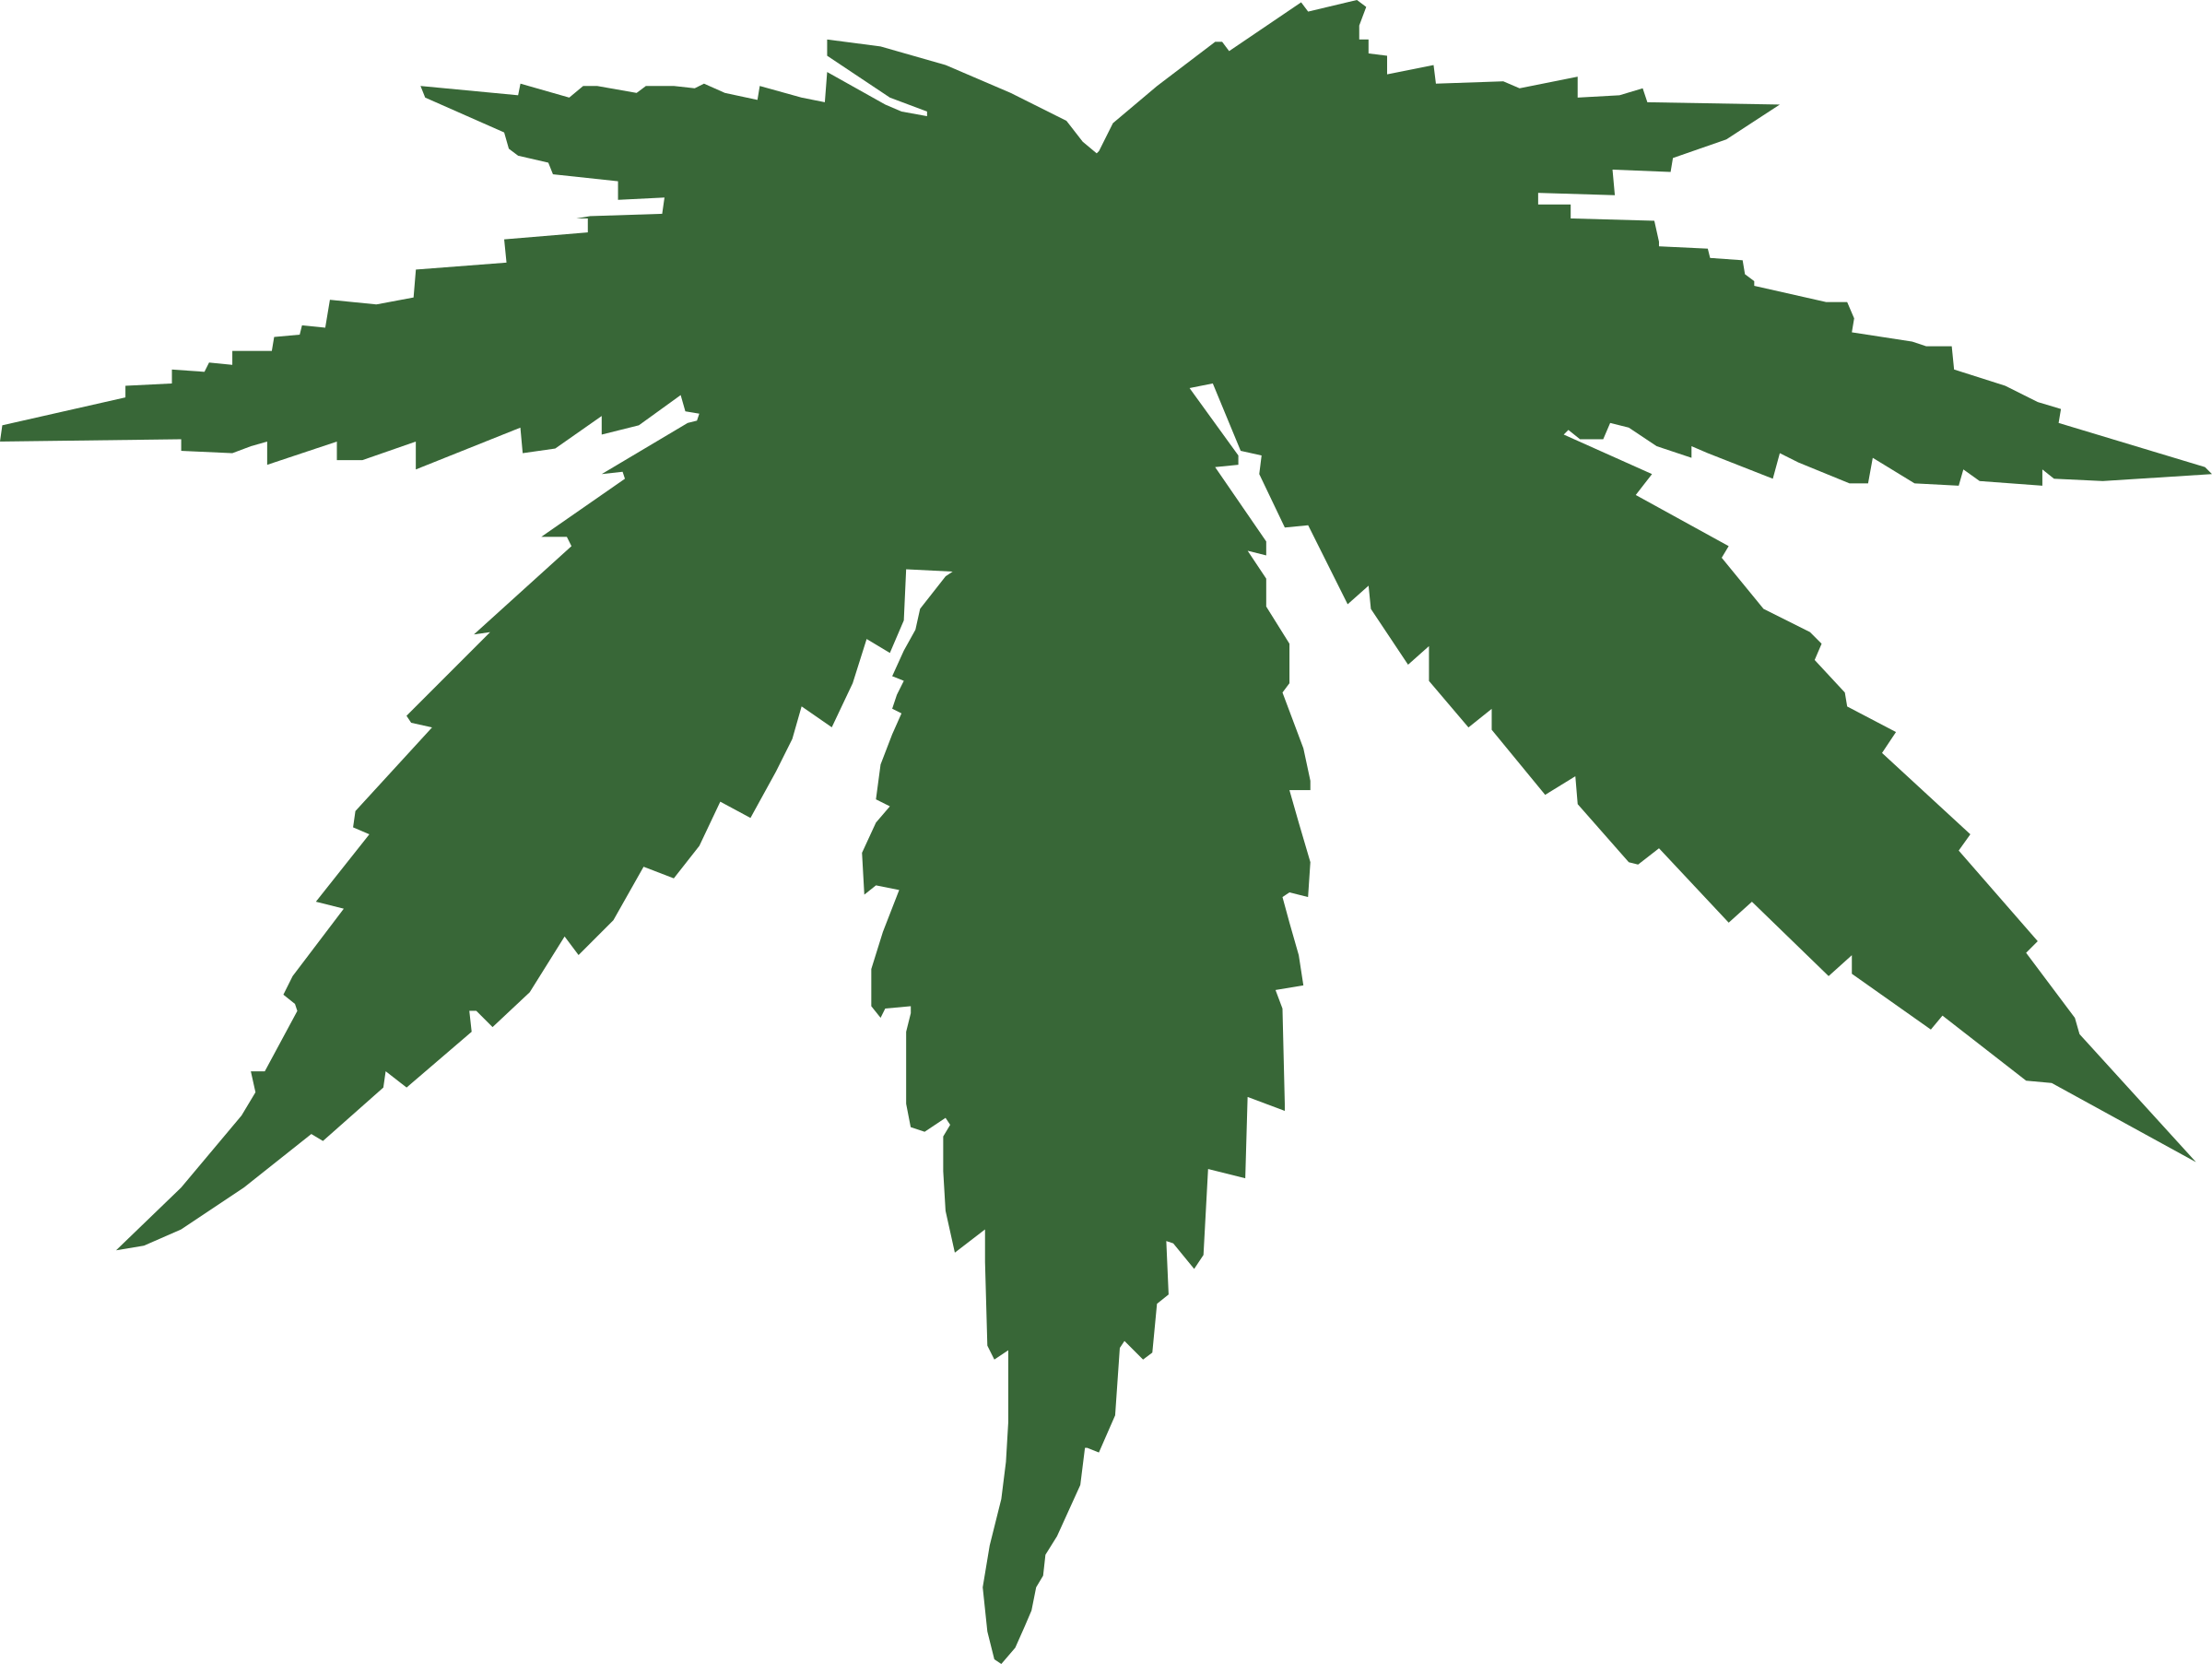 Weed svg animated. Clipart cannabis leaf big